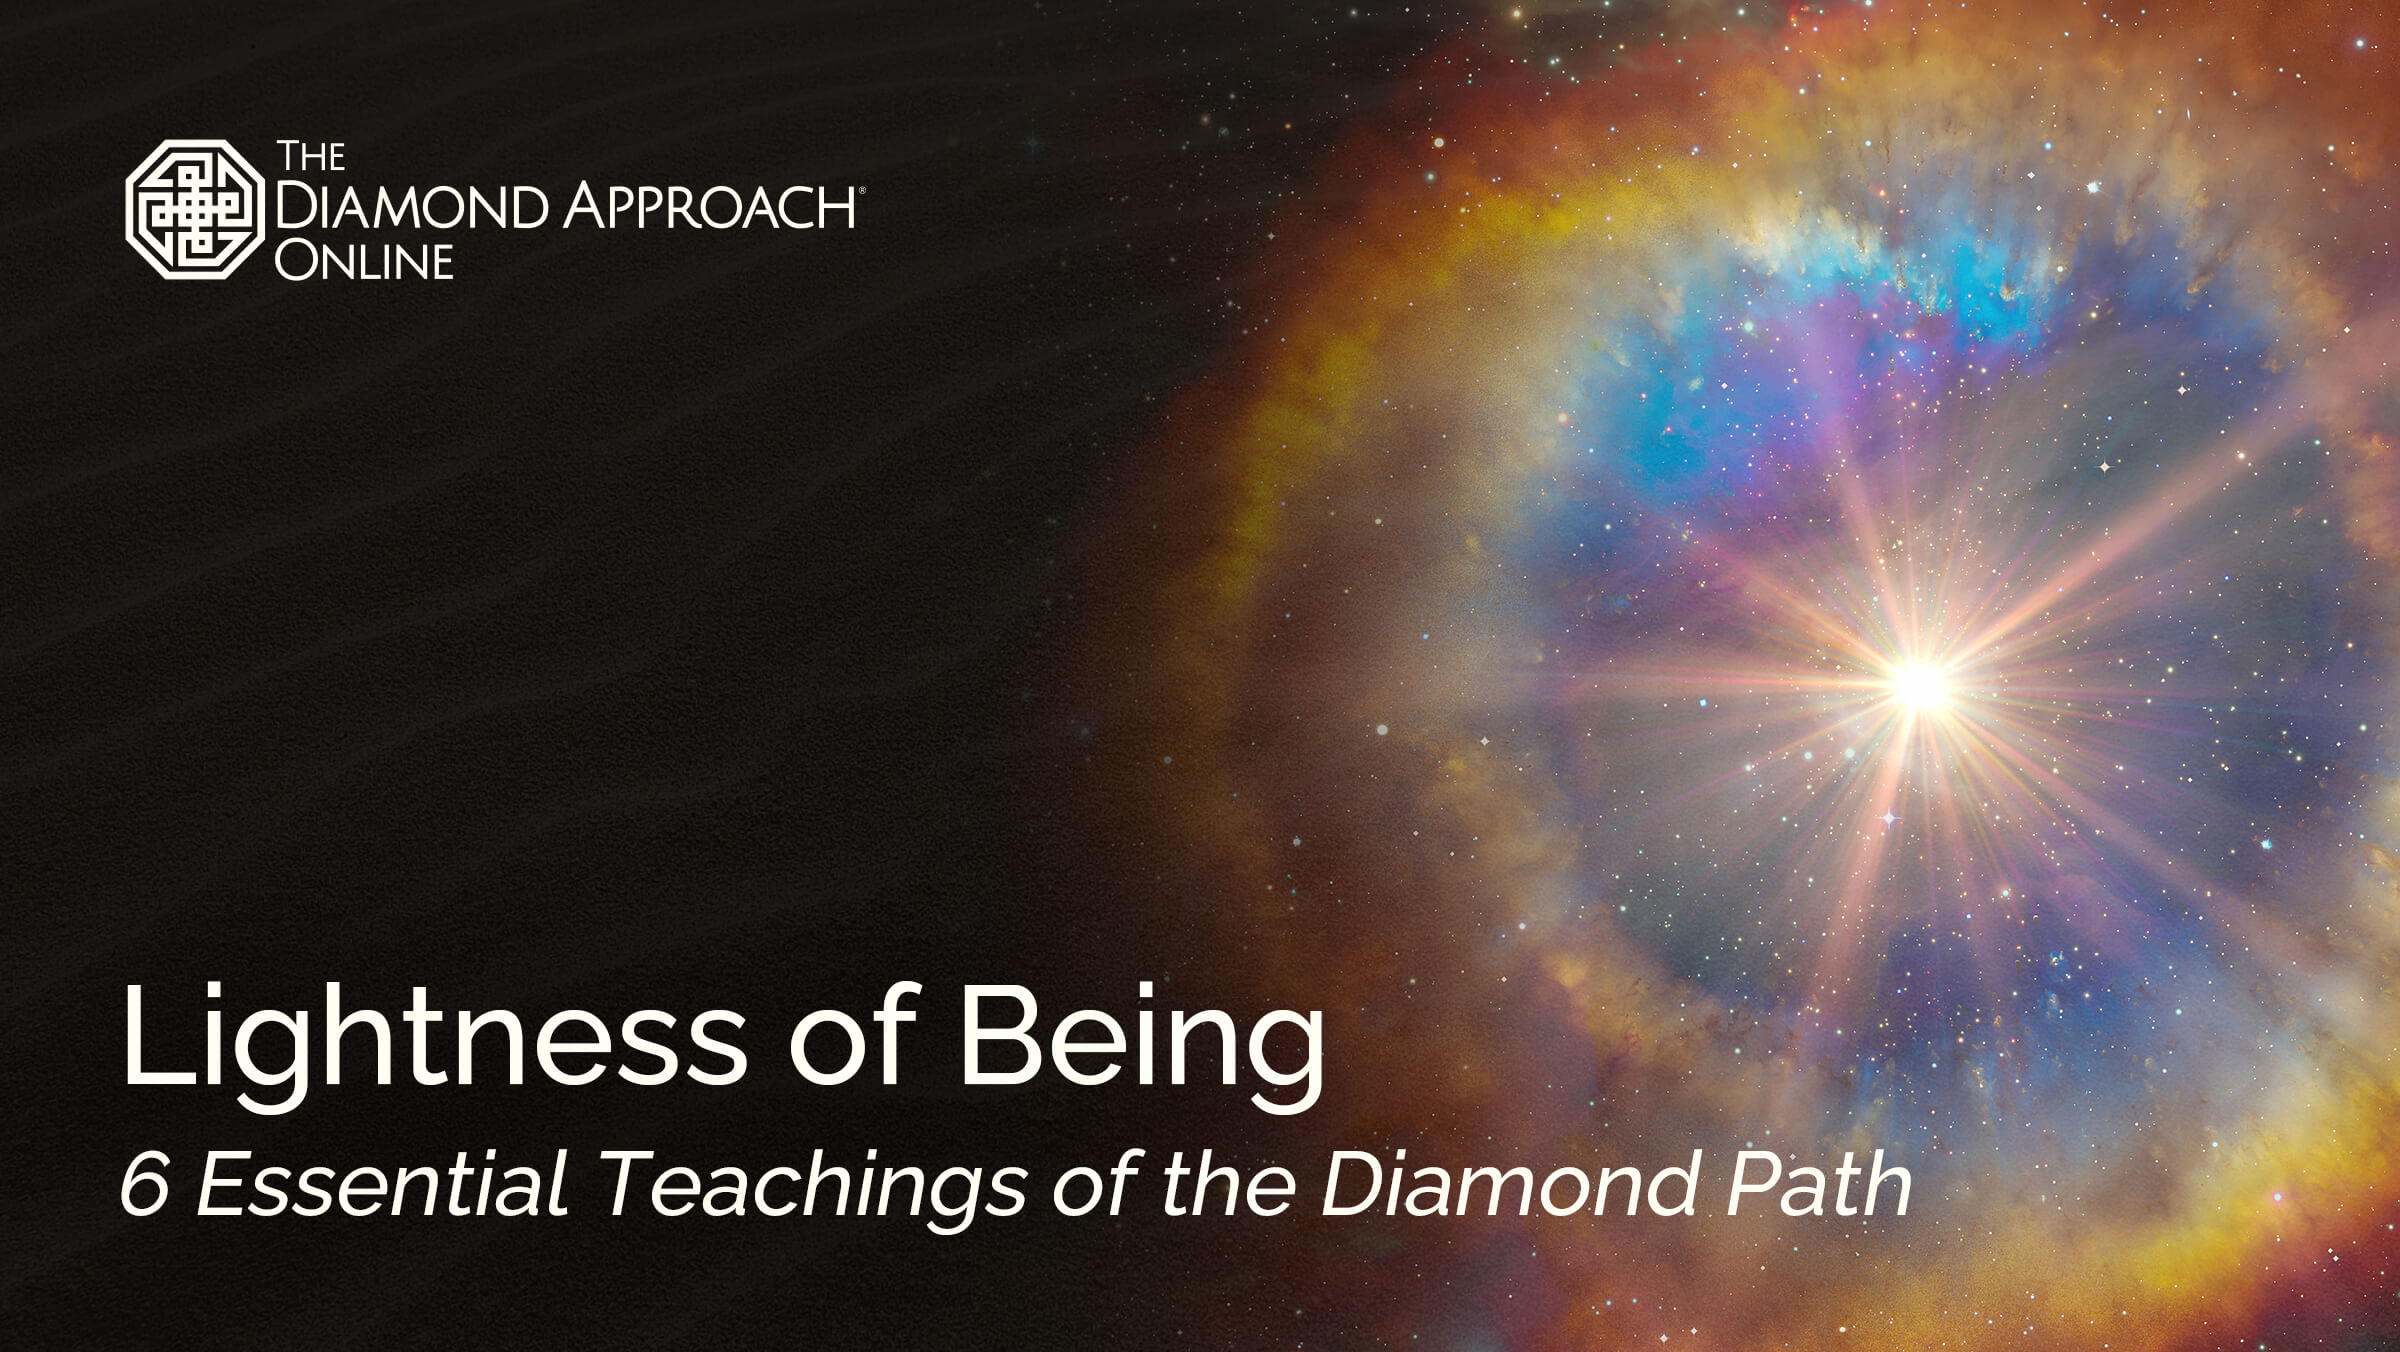 Lightness of Being: 6 Essential Teachings of the Diamond Path